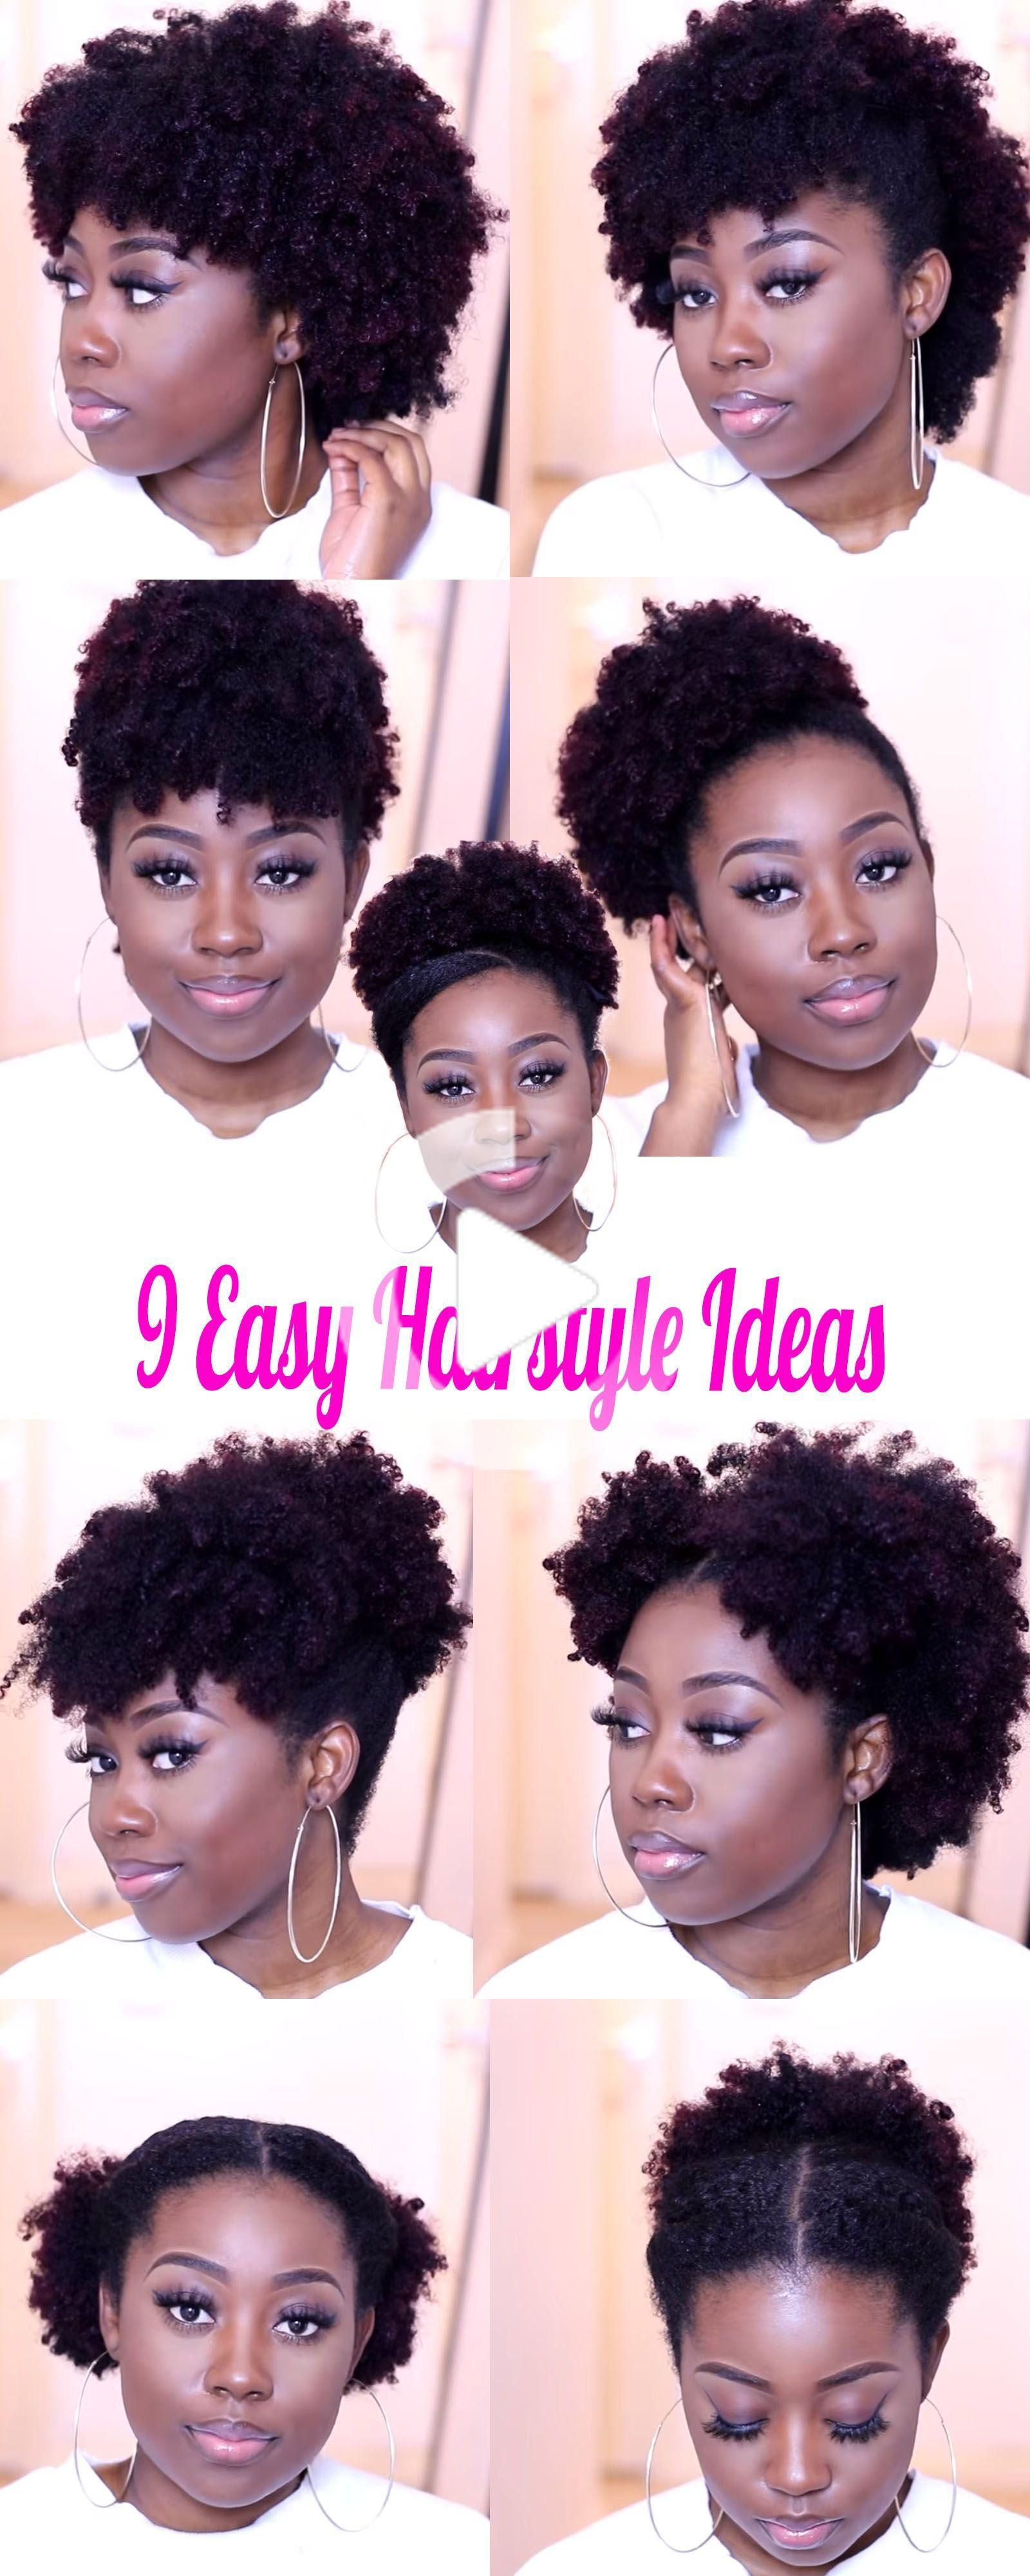 9 Medium Natural Hairstyle Ideas You Can Quickly Create On The Go In 2020 Natural Hair Styles Natural Hair Styles Easy Short Natural Hair Styles